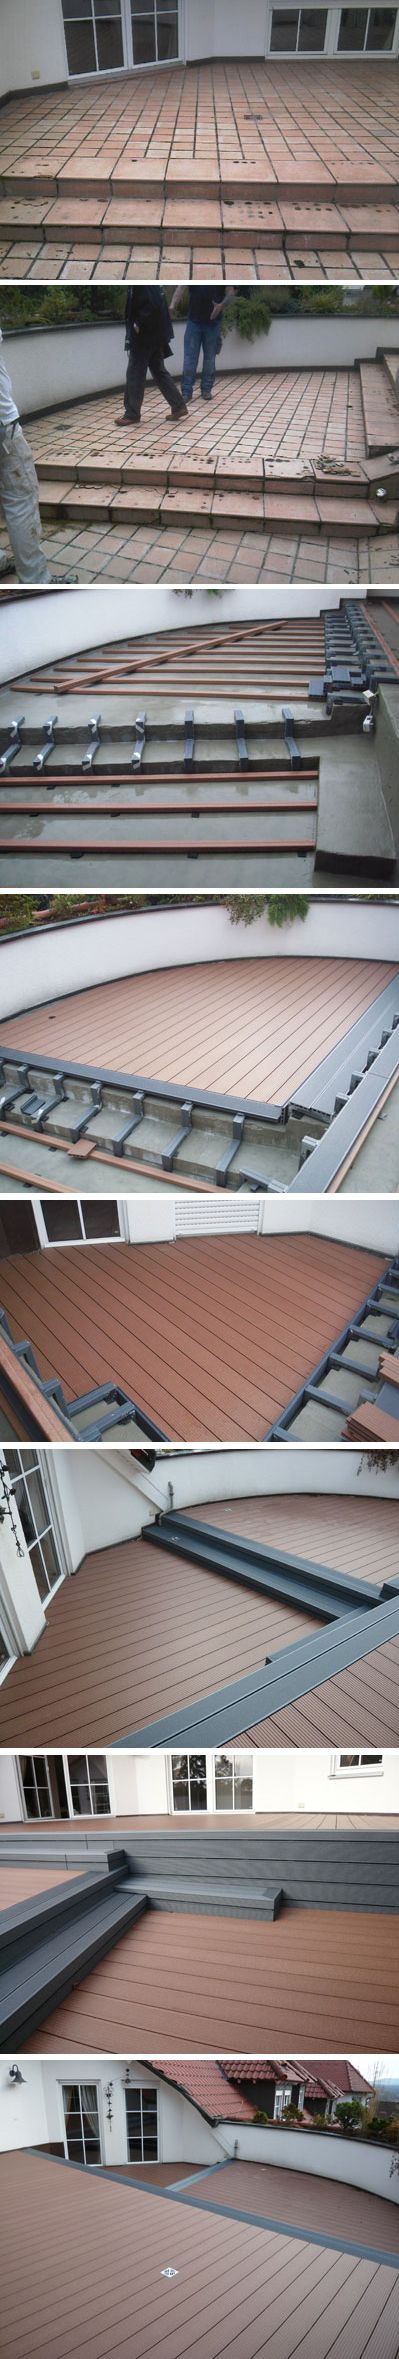 Before and after installing UPM ProFi Deck.